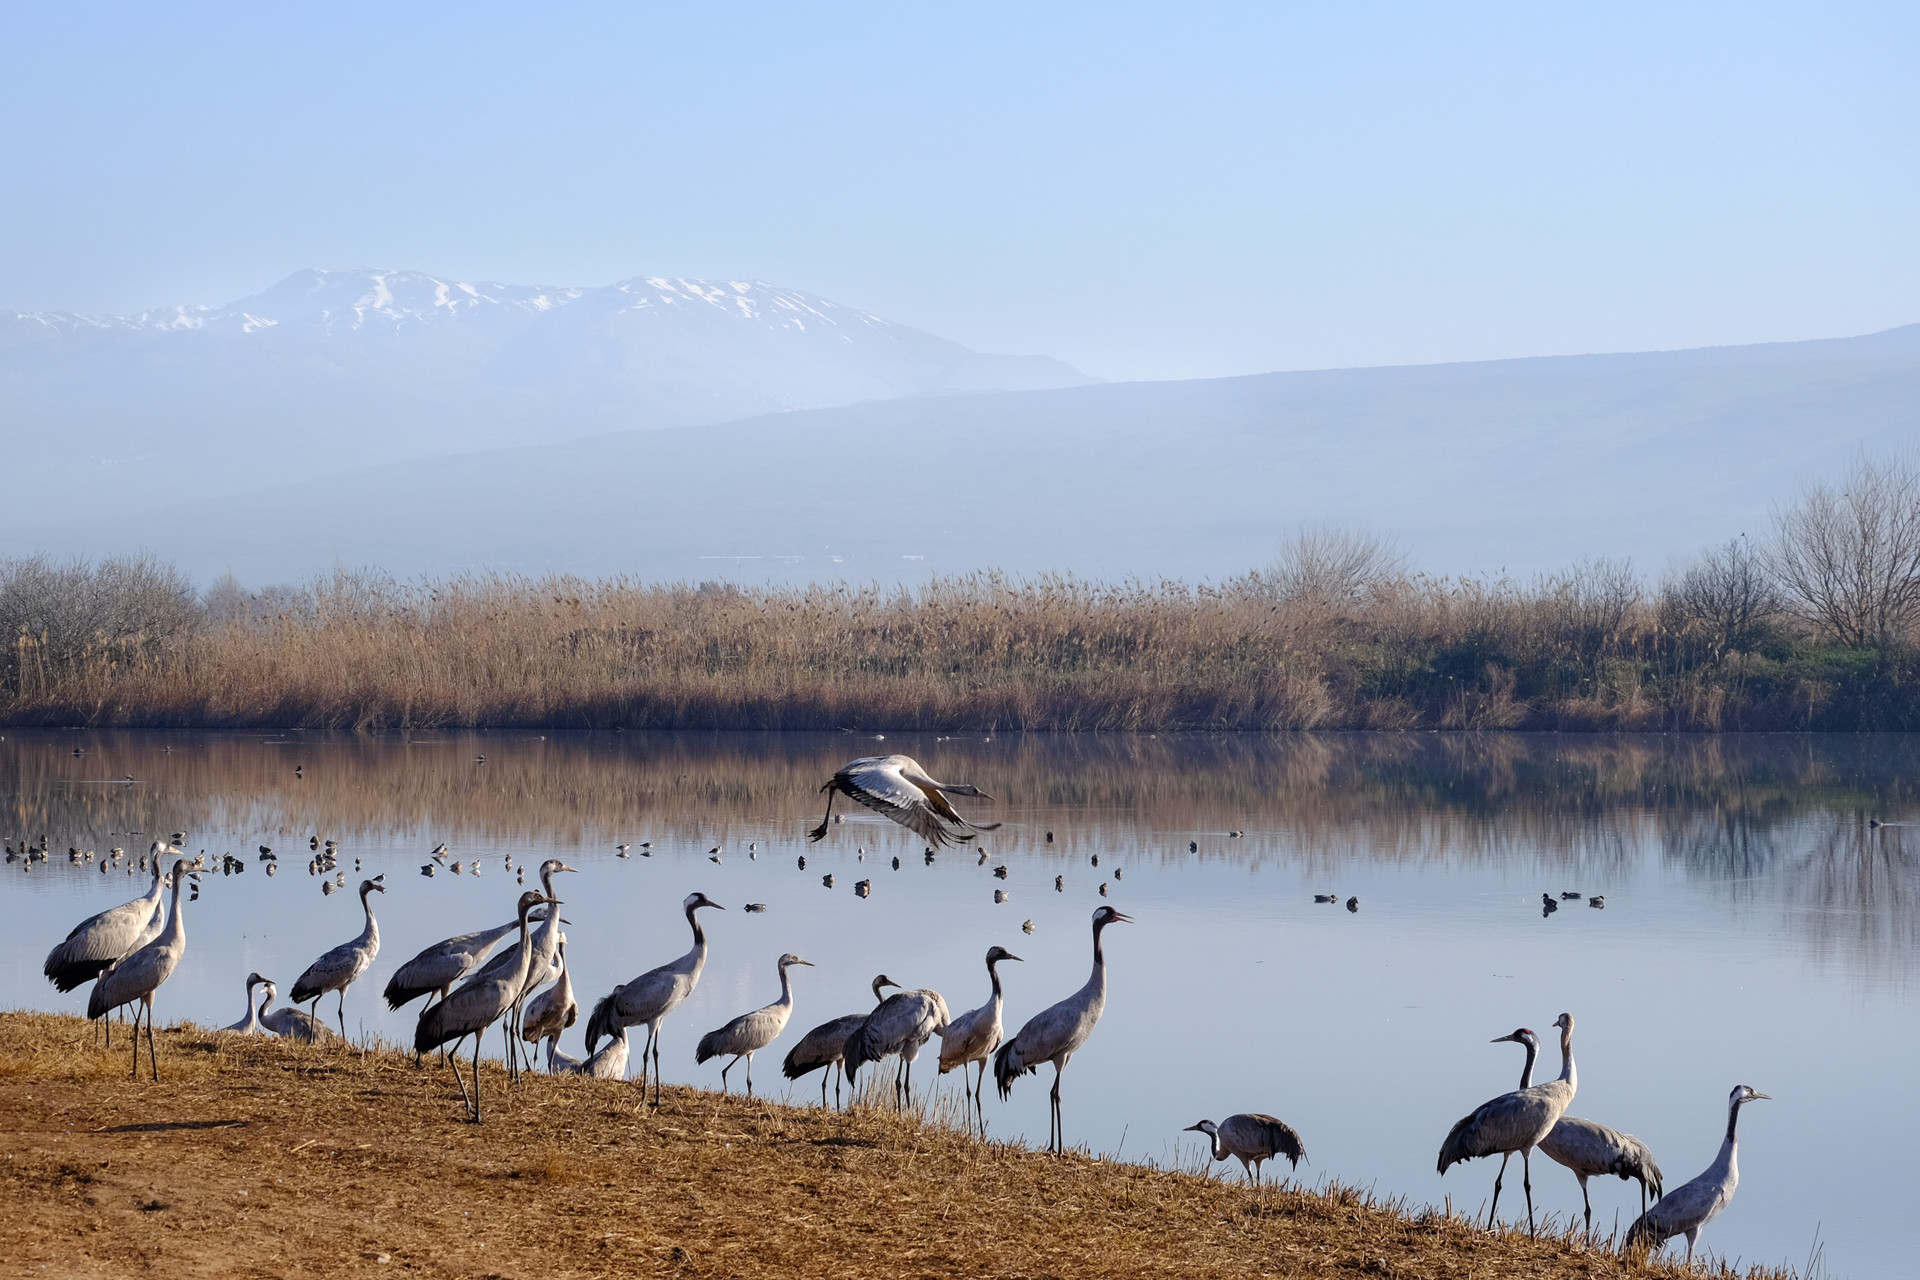 cranes at the lake, after the fog cleared